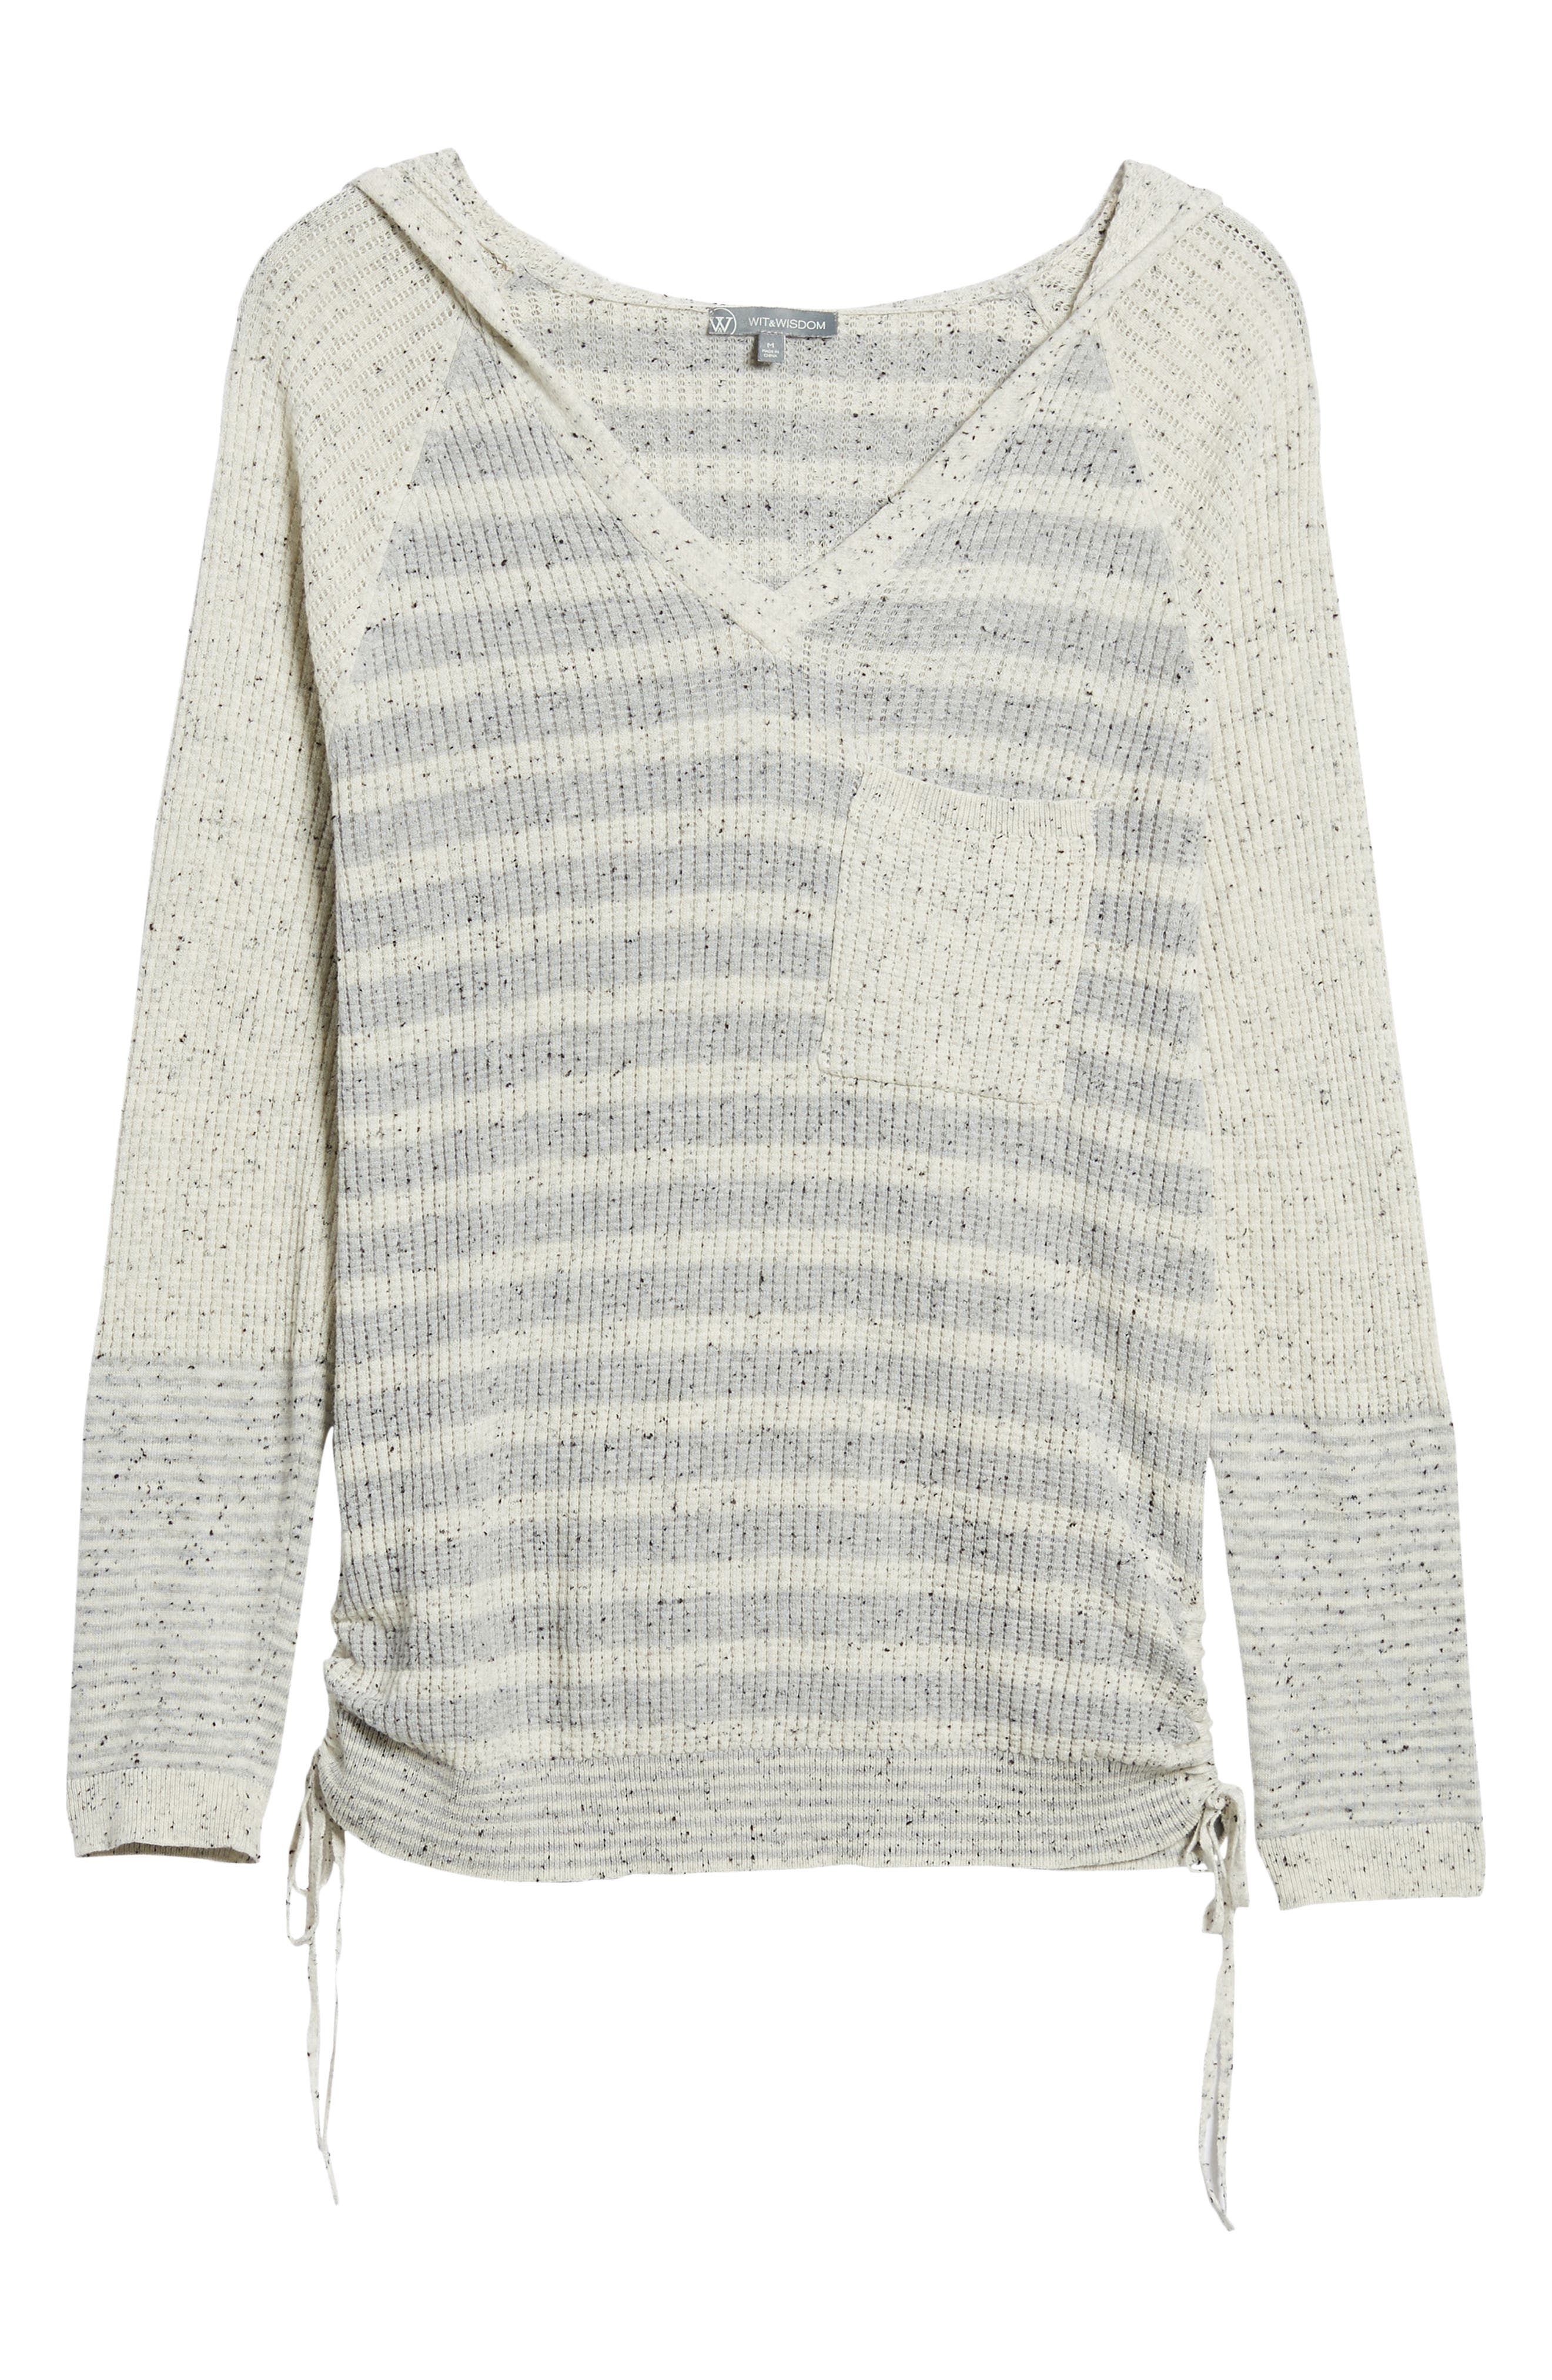 Waffle Knit Stripe Hooded Top,                             Alternate thumbnail 6, color,                             HEATHER GREY/ OFF WHITE